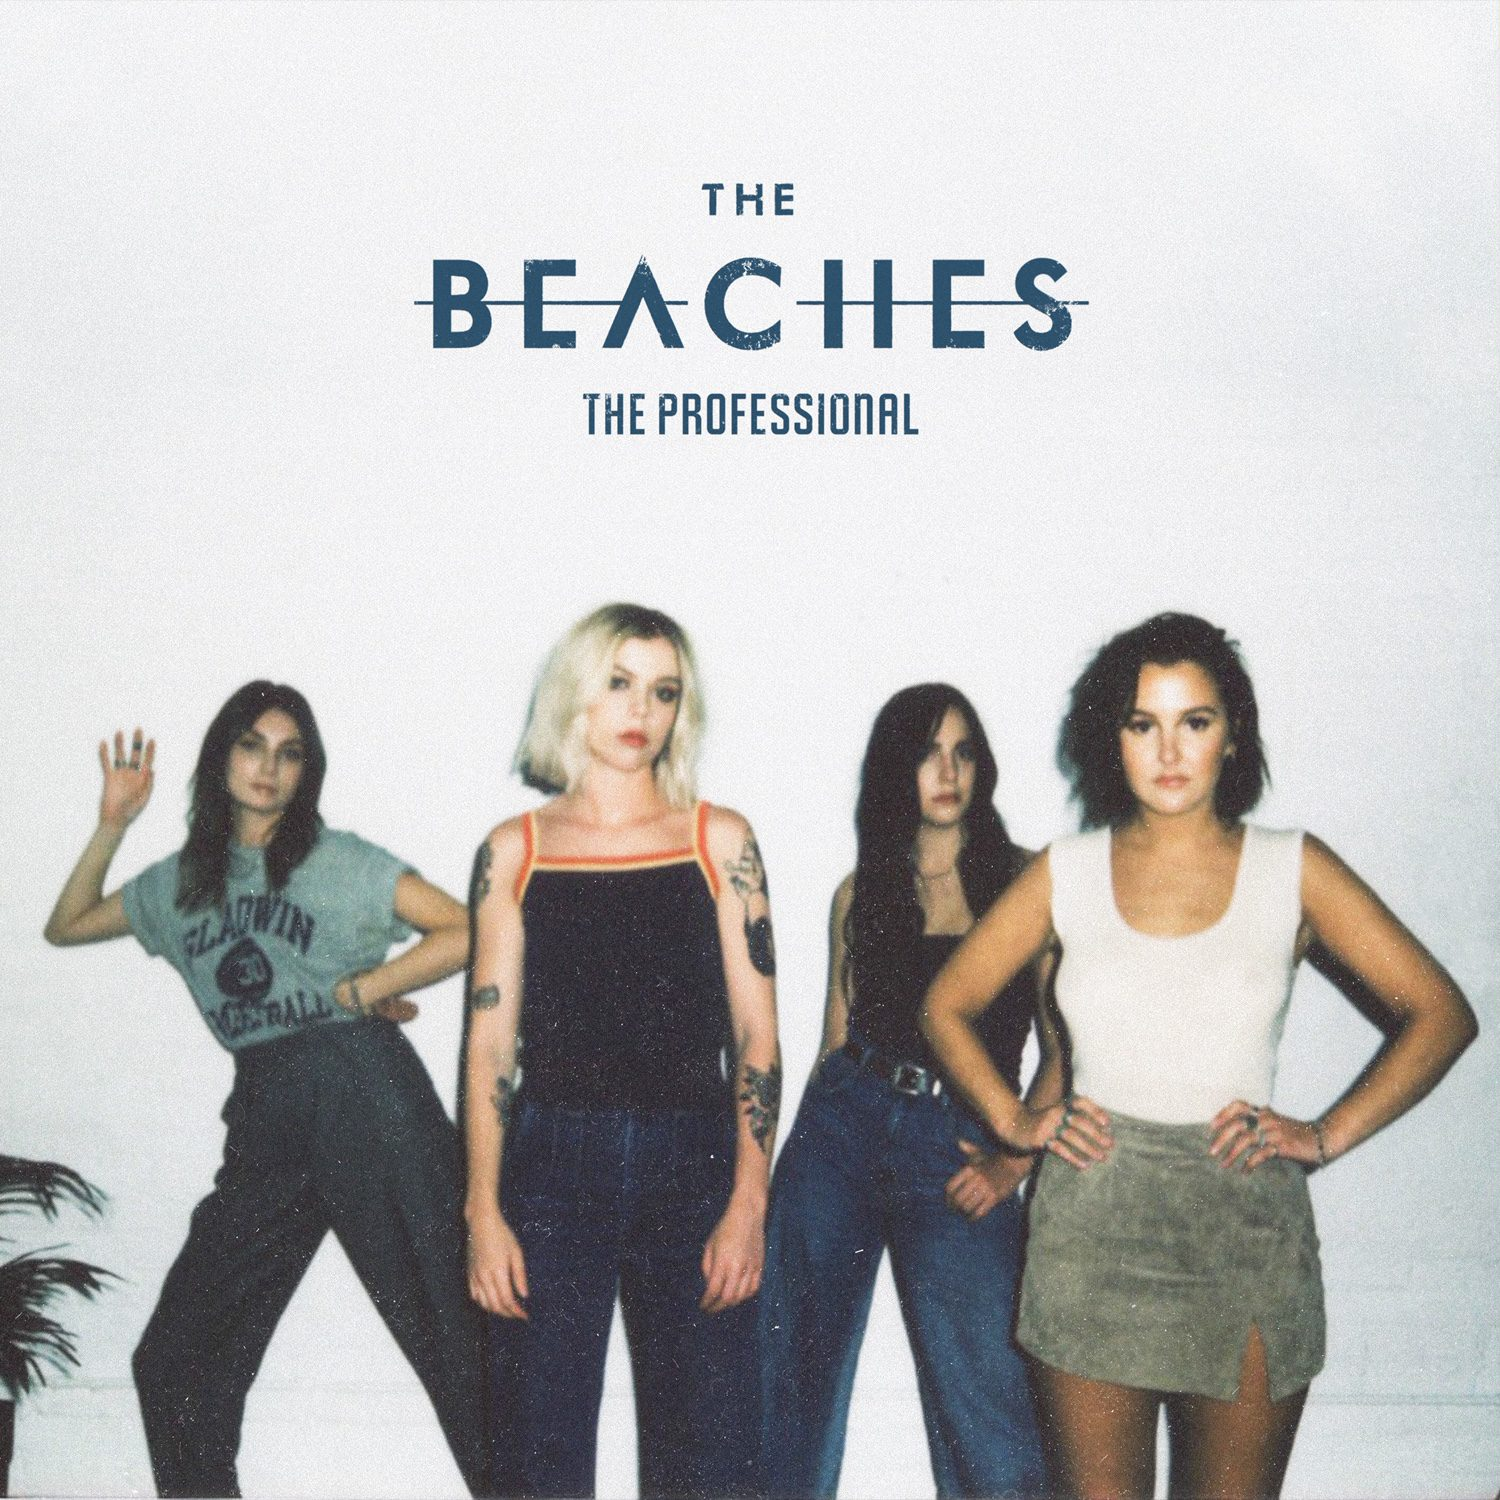 THE BEACHES ANNOUNCE THE PROFESSIONAL EP SET FOR RELEASE ON MAY 16 | Umusic